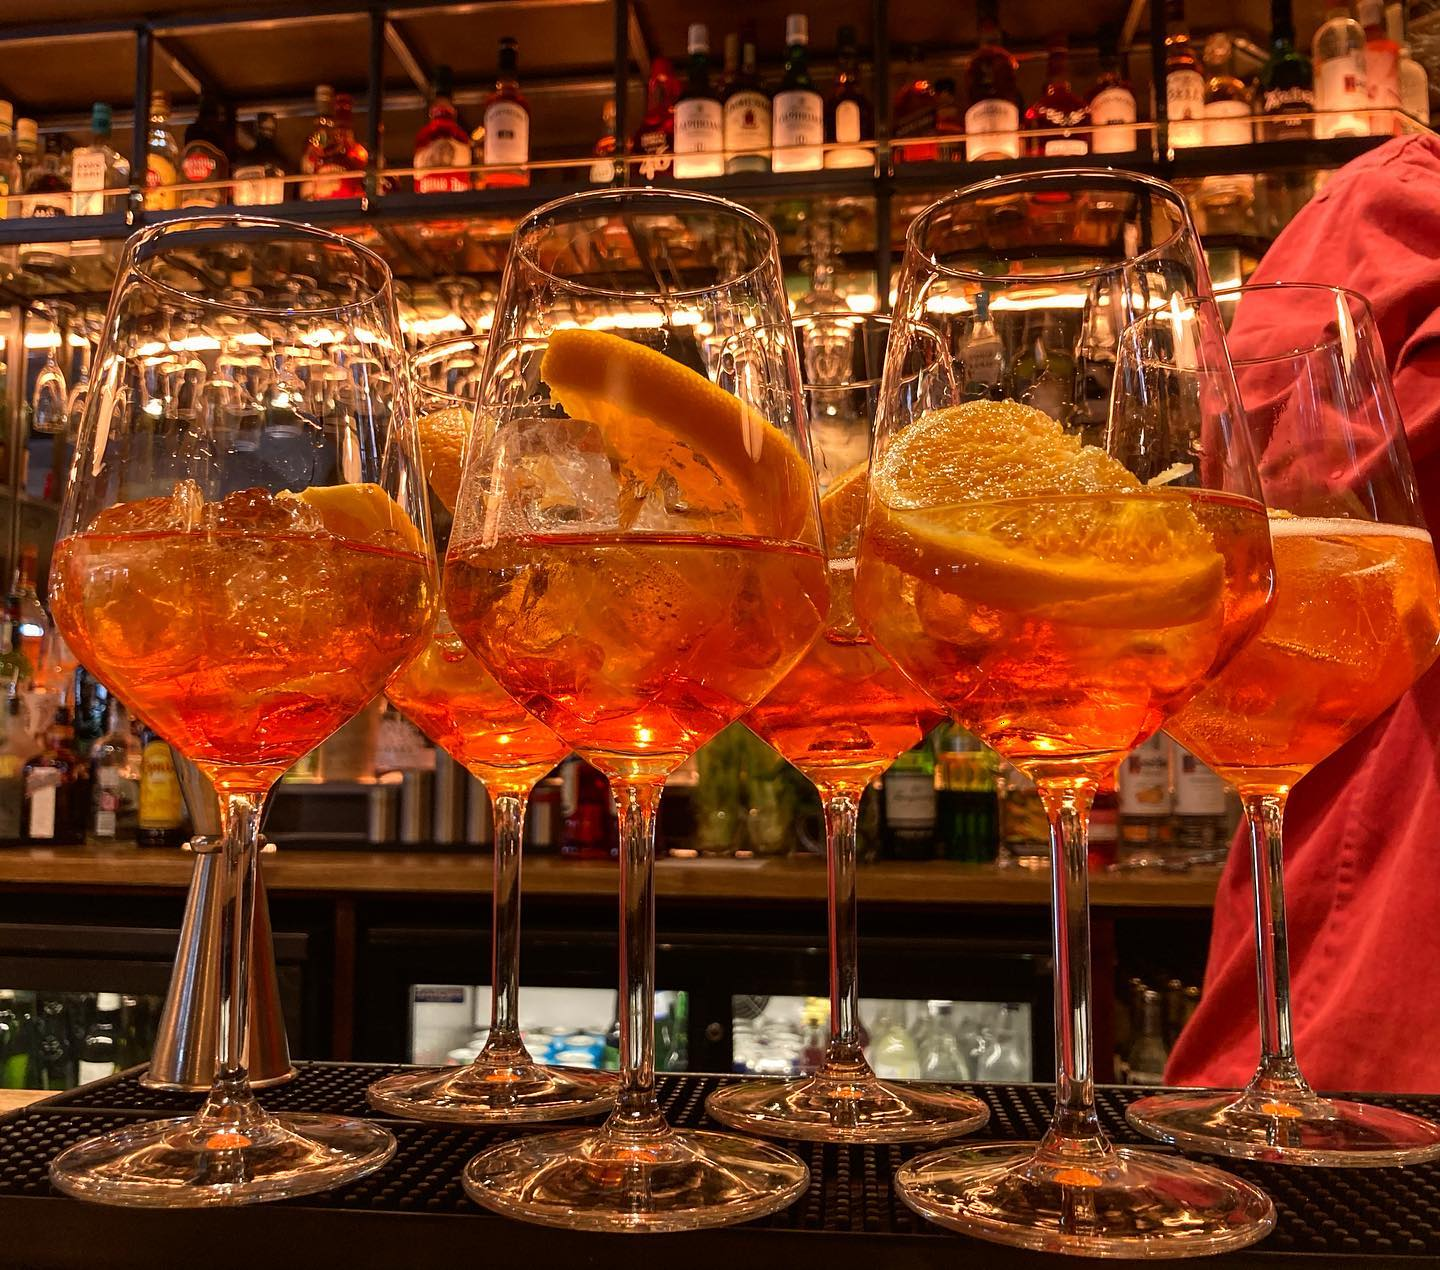 Fancy a refreshing cocktail on this scorcher of a day? An aperol spritz will cool you down!   Stop by The Gatehouse for a Wednesday night drink! We have plenty of outside tables for walk ins... see you later!   #drinks #27degrees #northlondon #highgate #hampstead #gardendining #cocktails #refreshing